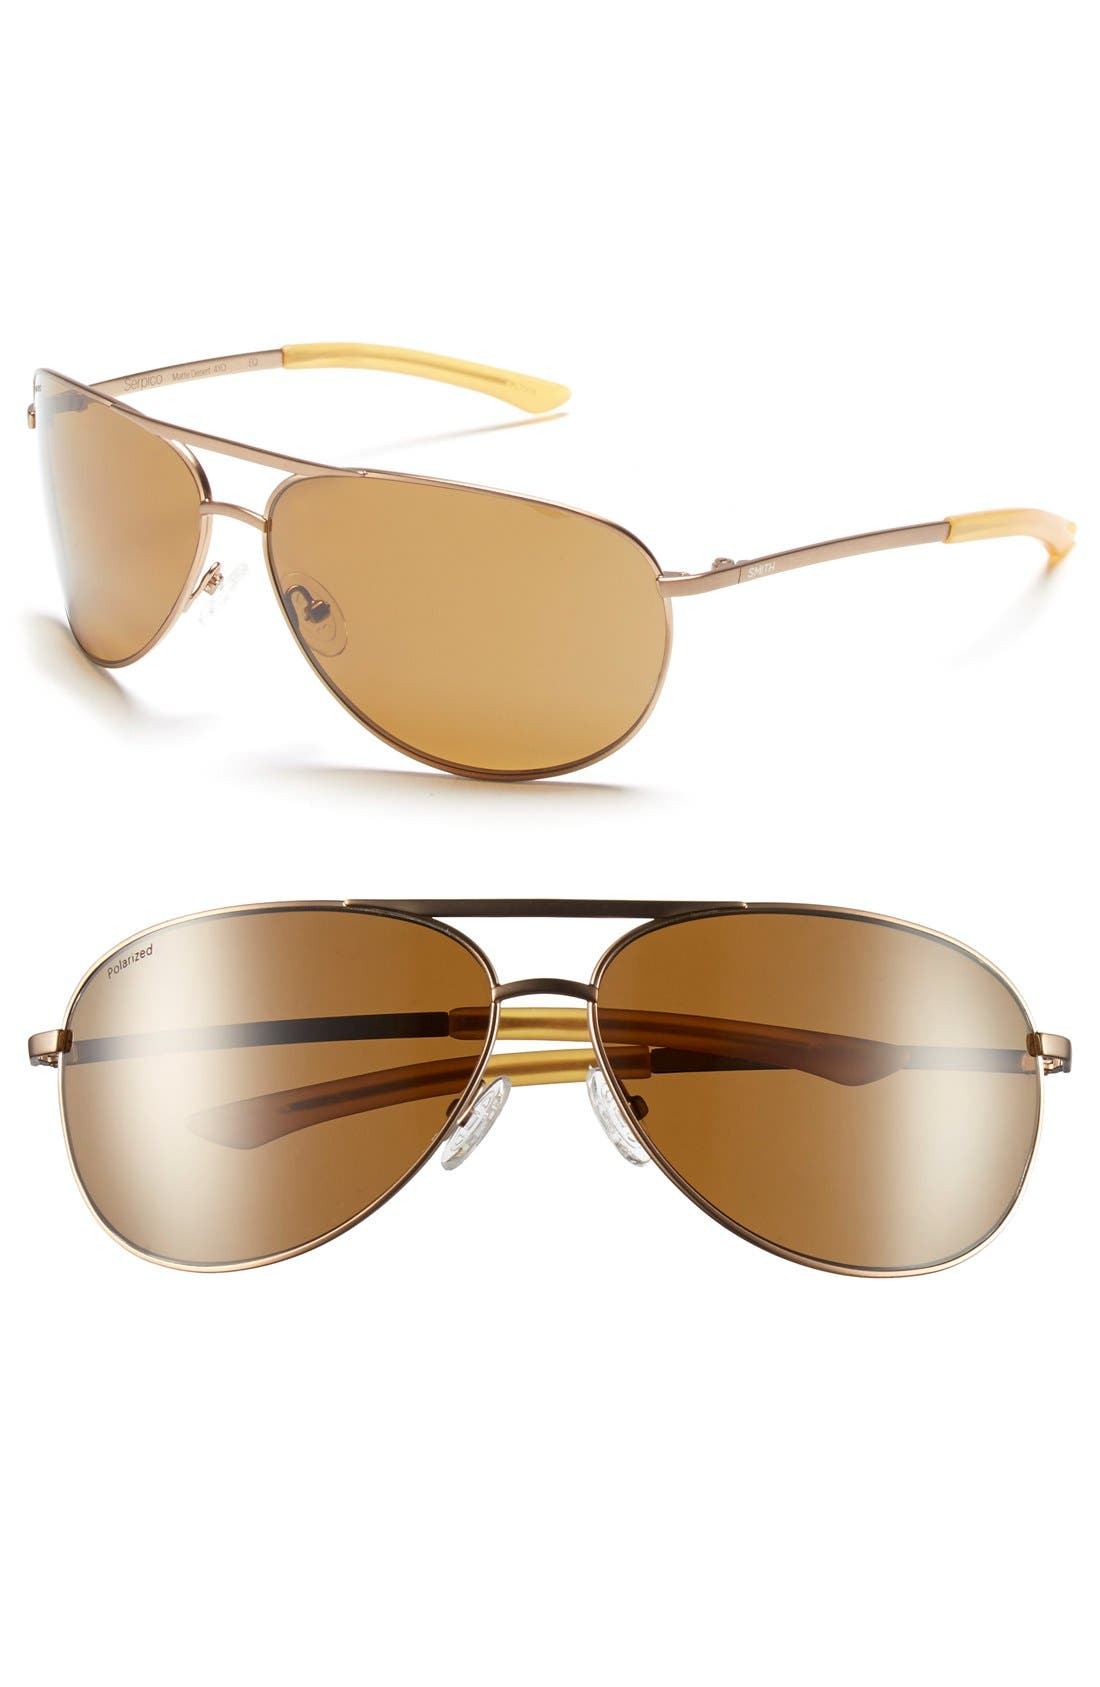 Serpico 65mm Polarized Aviator Sunglasses,                             Main thumbnail 1, color,                             Matte Desert/ Polar Brown